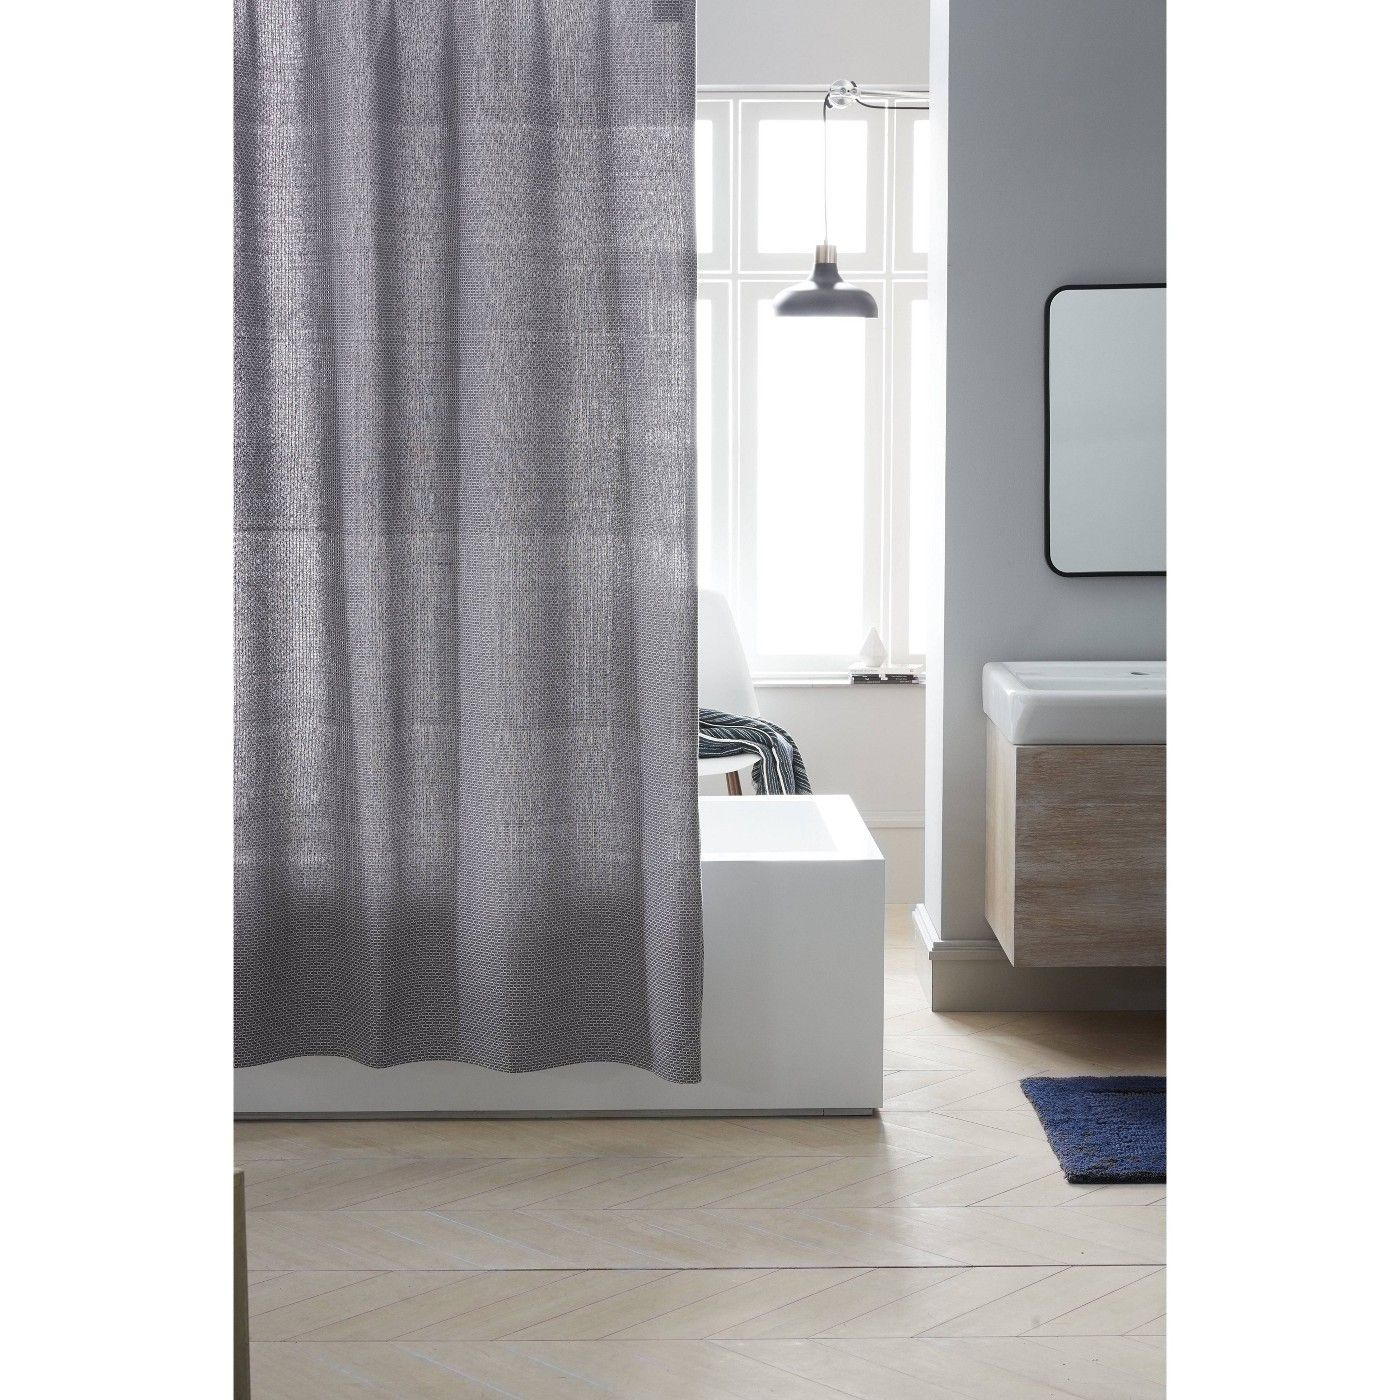 Mosaic Design Shower Curtain Pigeon Gray Project 62 In 2020 Mosaic Designs Cotton Shower Curtain Curtains